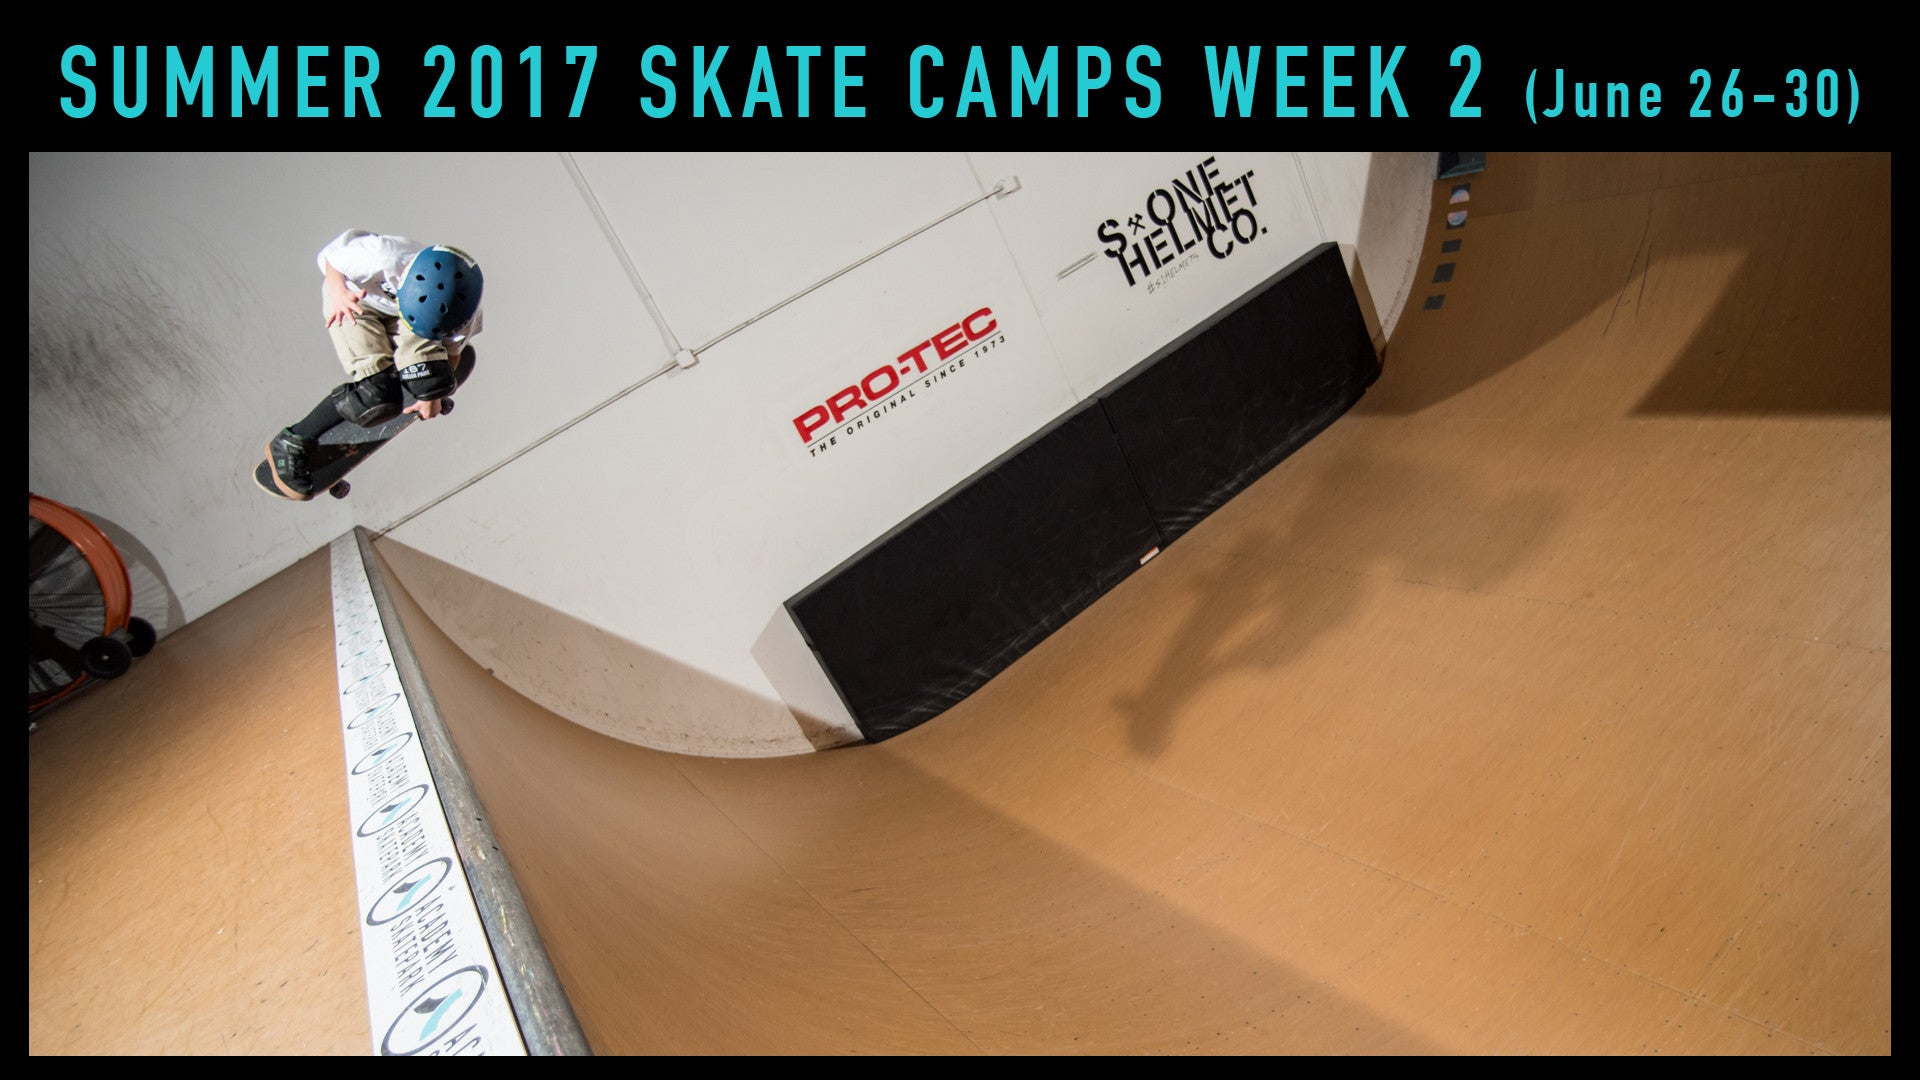 Summer Skate Camp Week 2